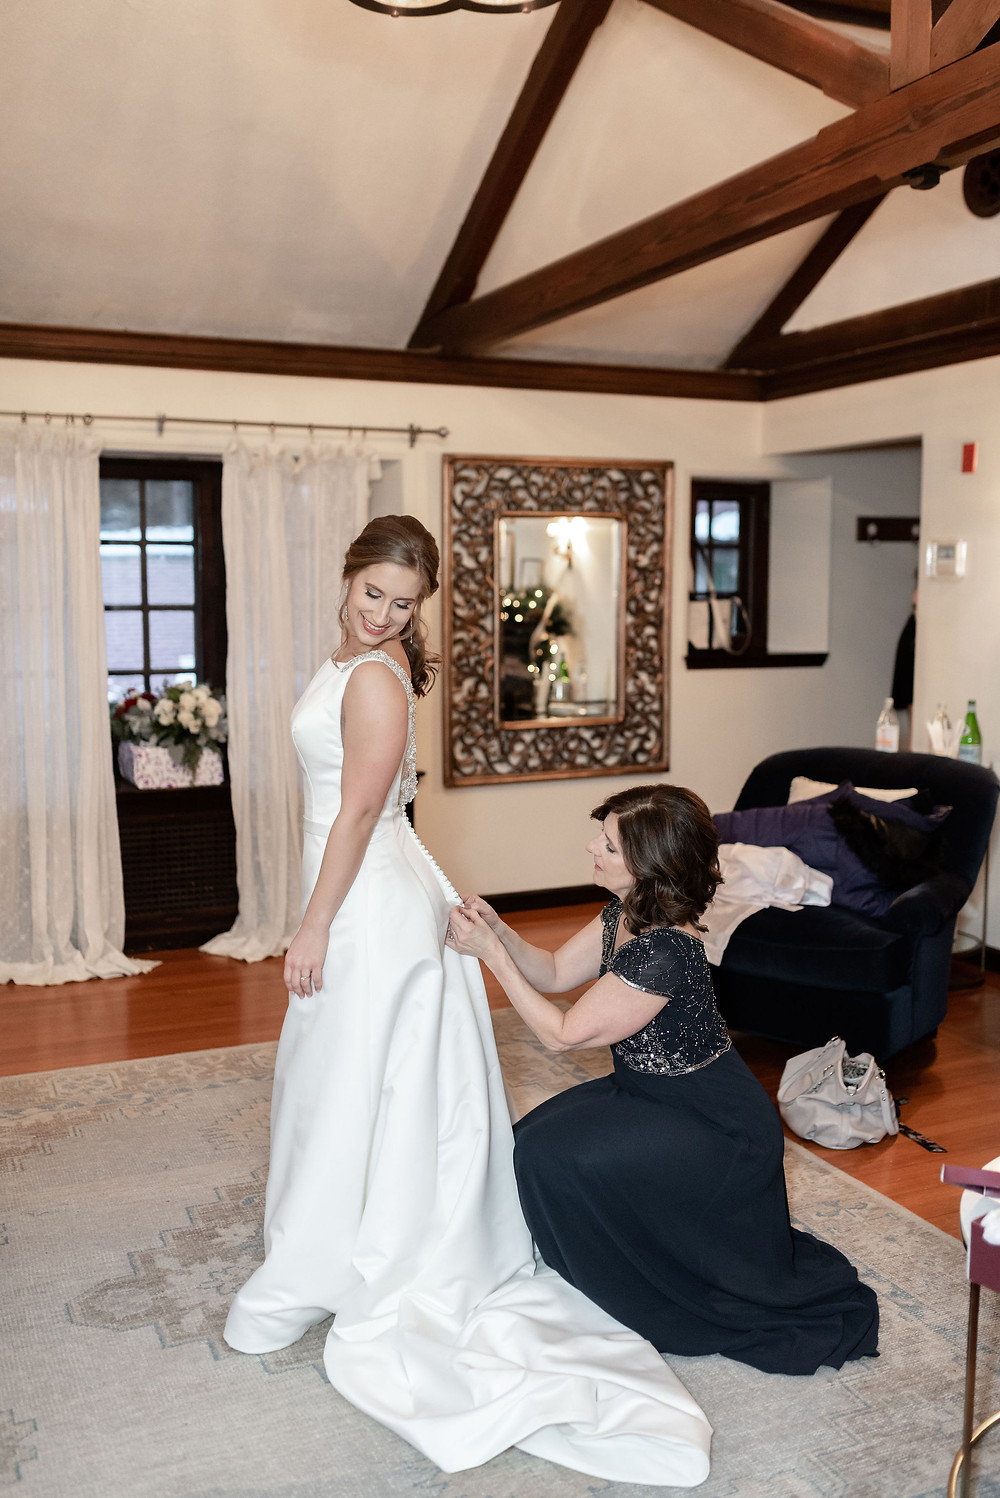 mom buttoning bride's dress before wedding ceremony